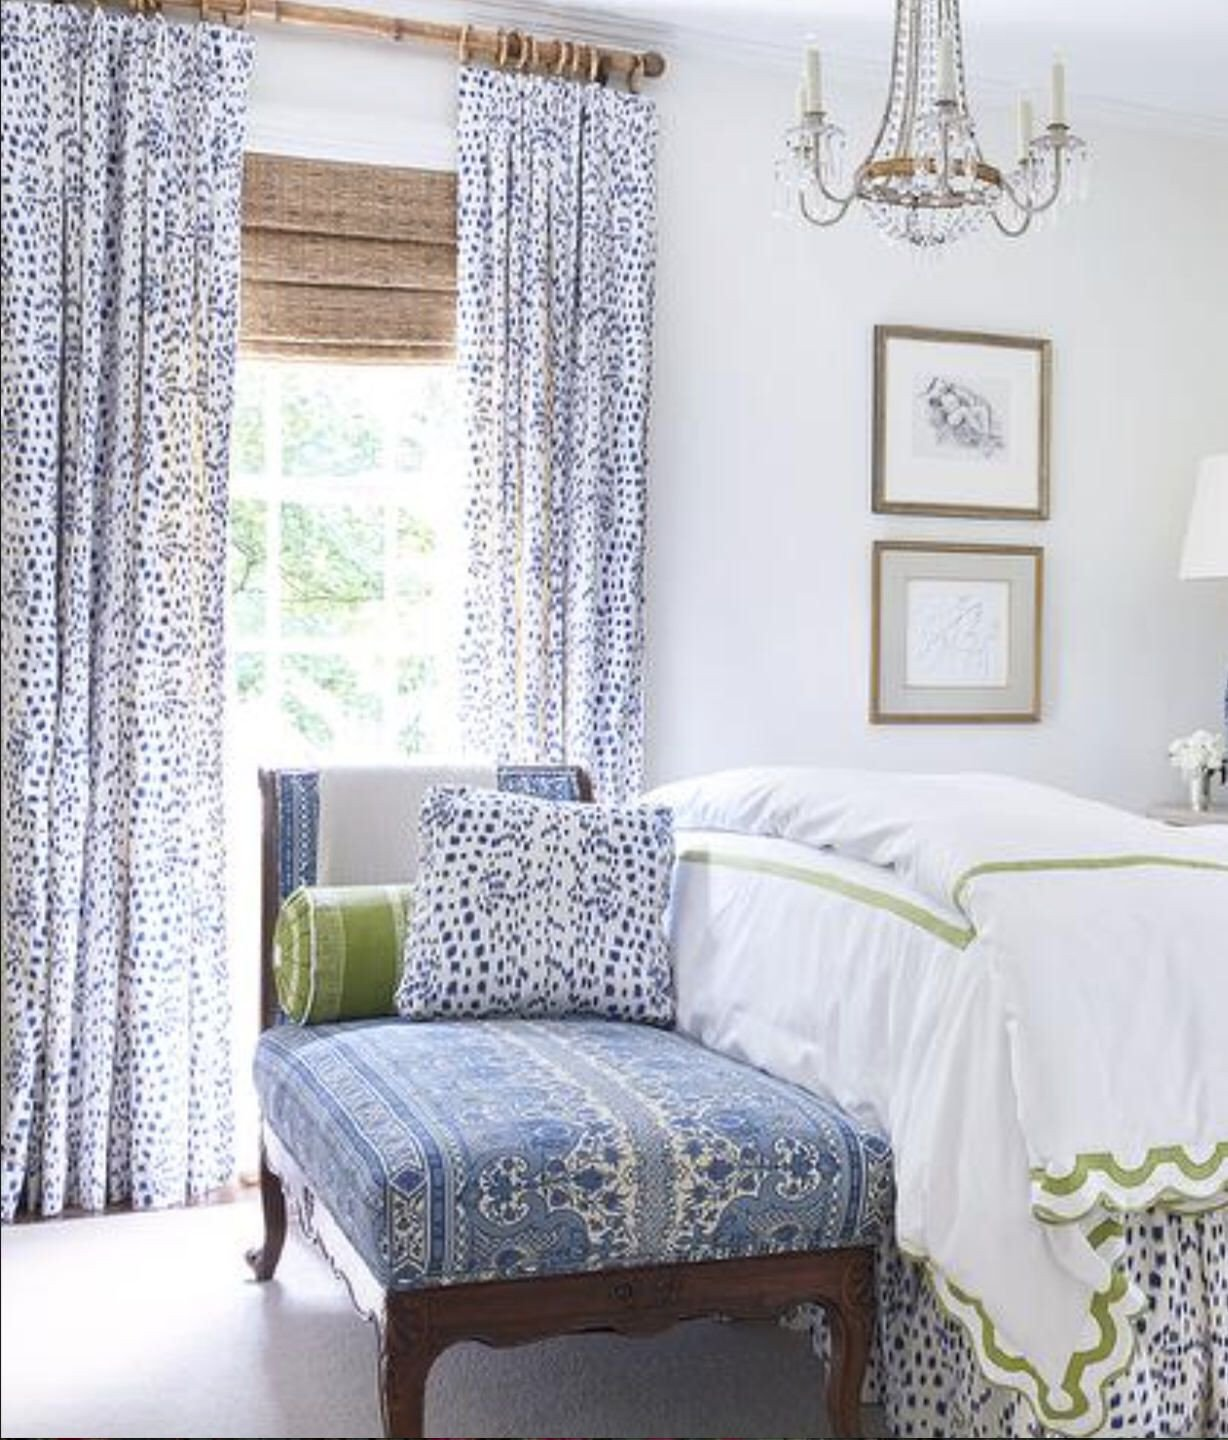 Bedroom Curtains and Drapes Inspirational Brunschwig and Fils Curtains Les touches Curtains Les